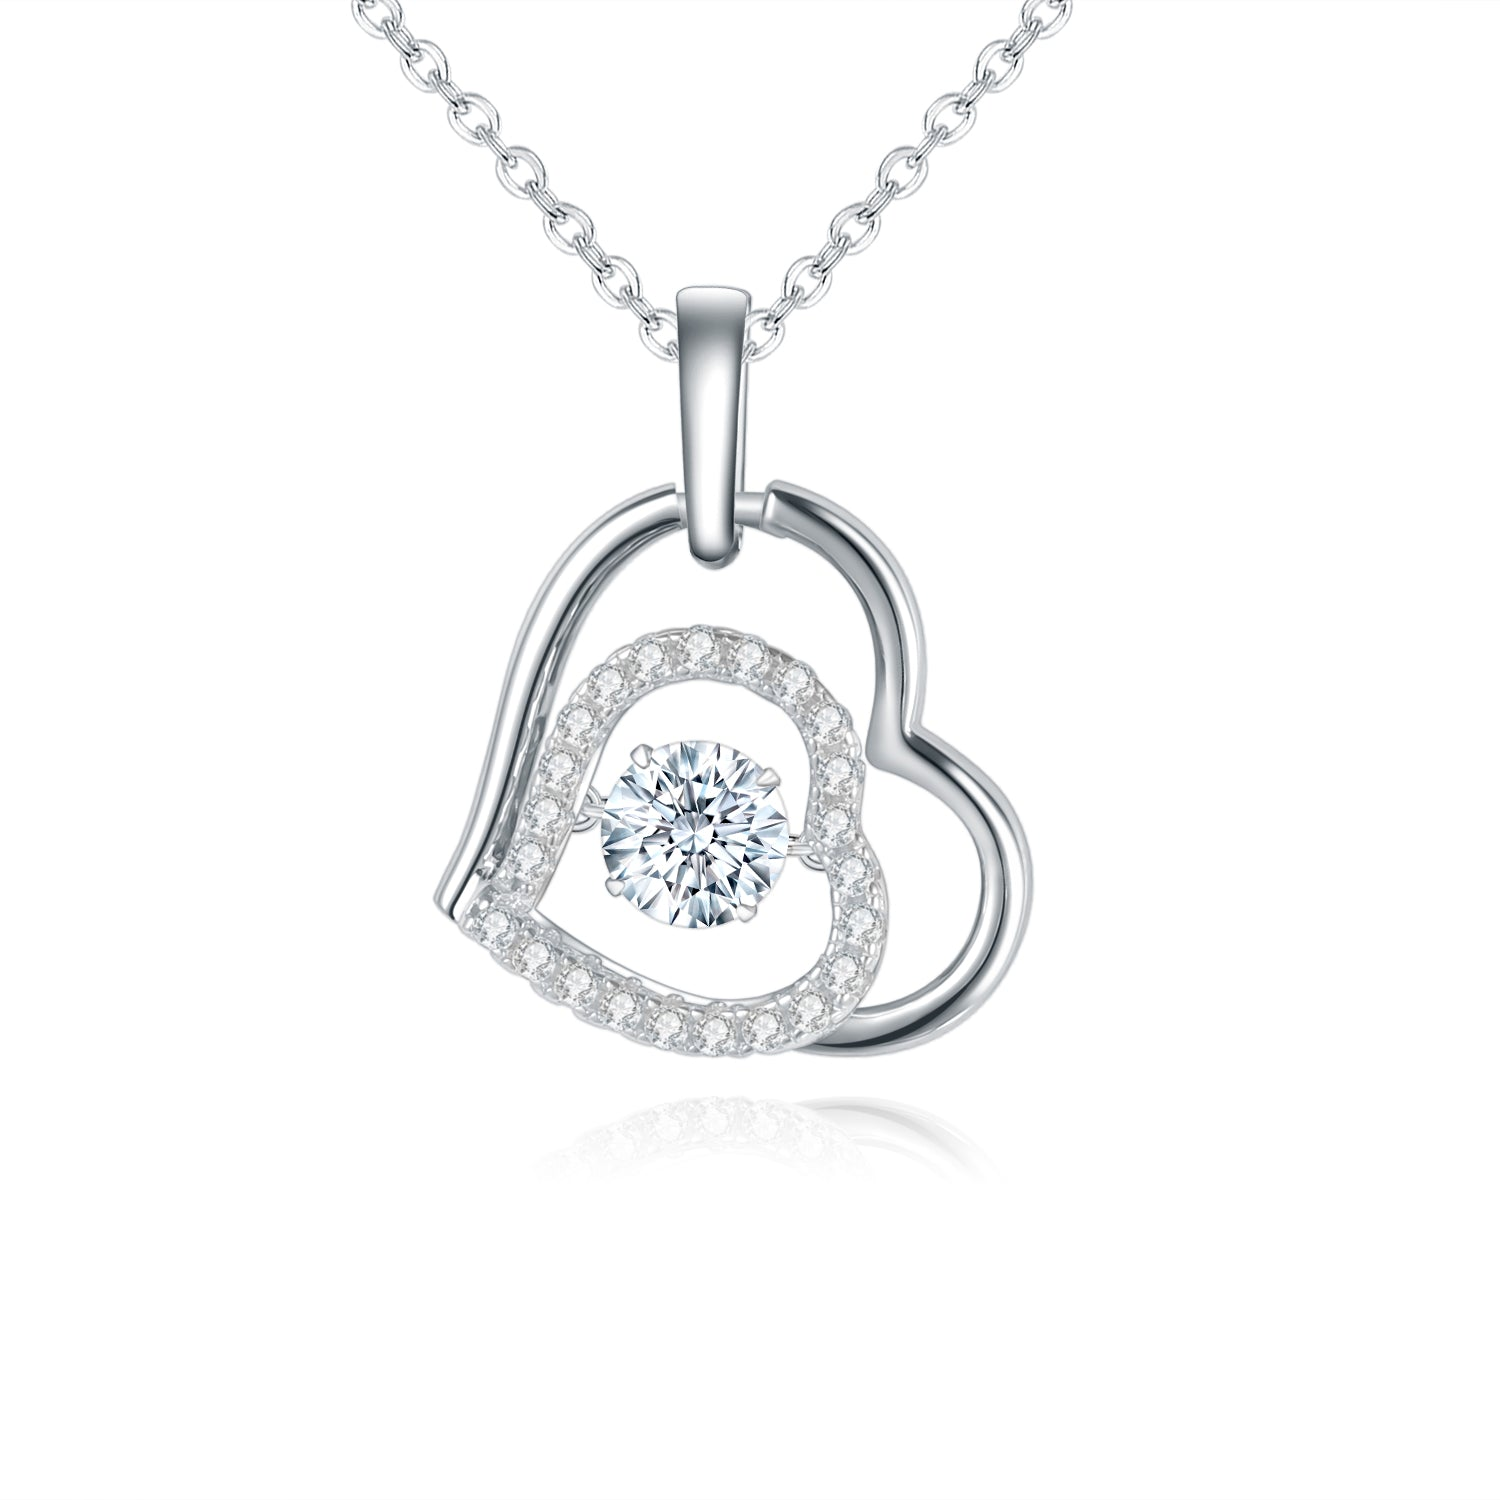 Heart Pendant Necklace Moissanite 5.0mm 0.5Ct 925 Sterling Silver - WISHKAA.COM